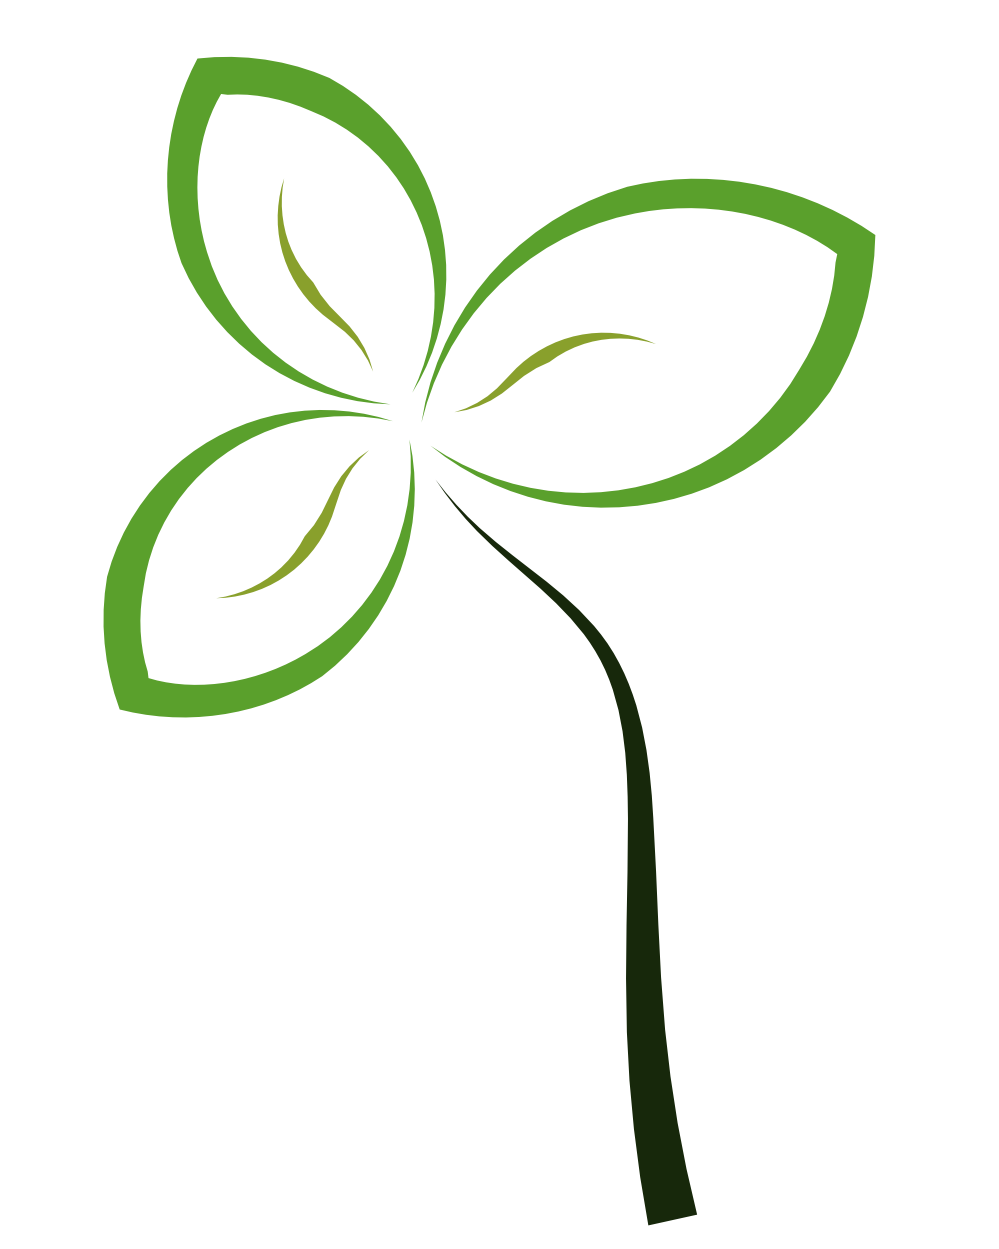 Abstract flower png. Free transparent images download